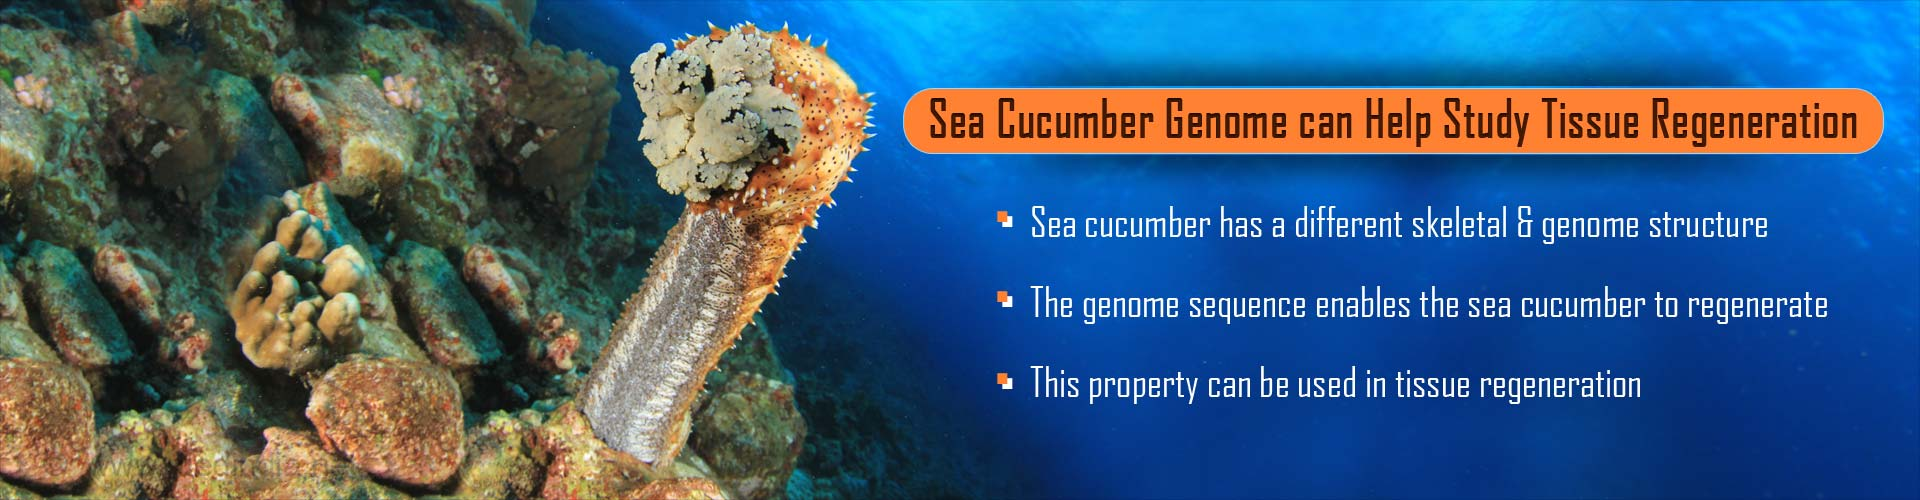 Sea Cucumber Genome Can Help In the Study of Tissue Regeneration